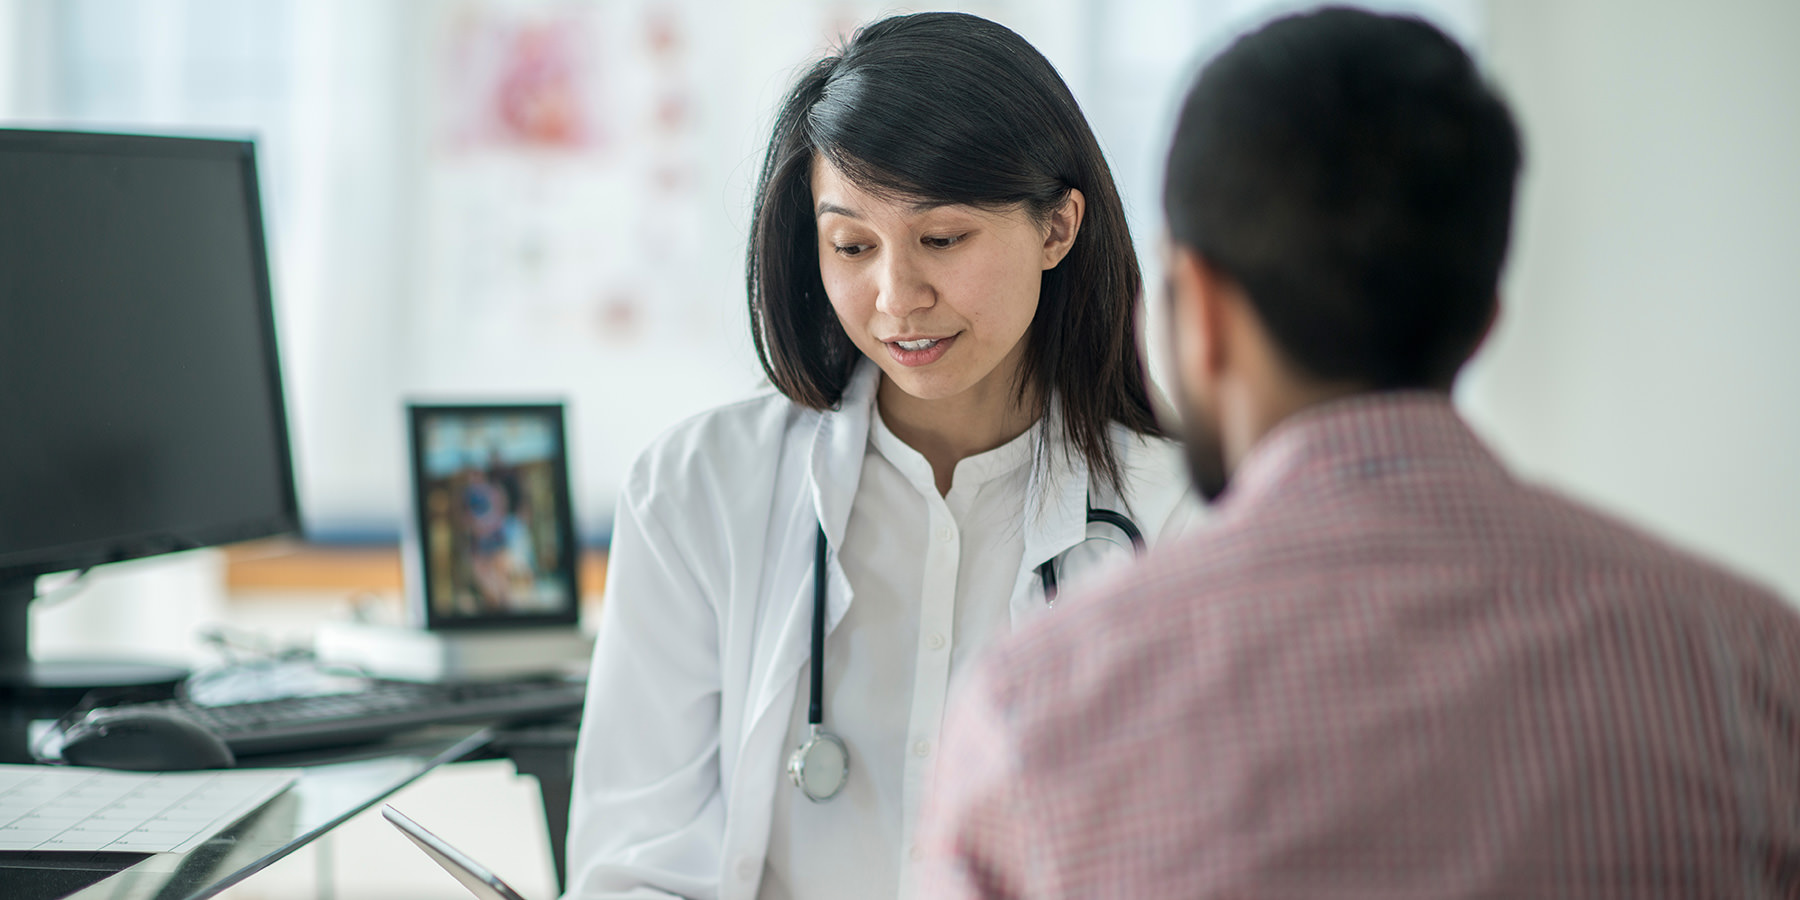 Employment physicals are key to workplace health.